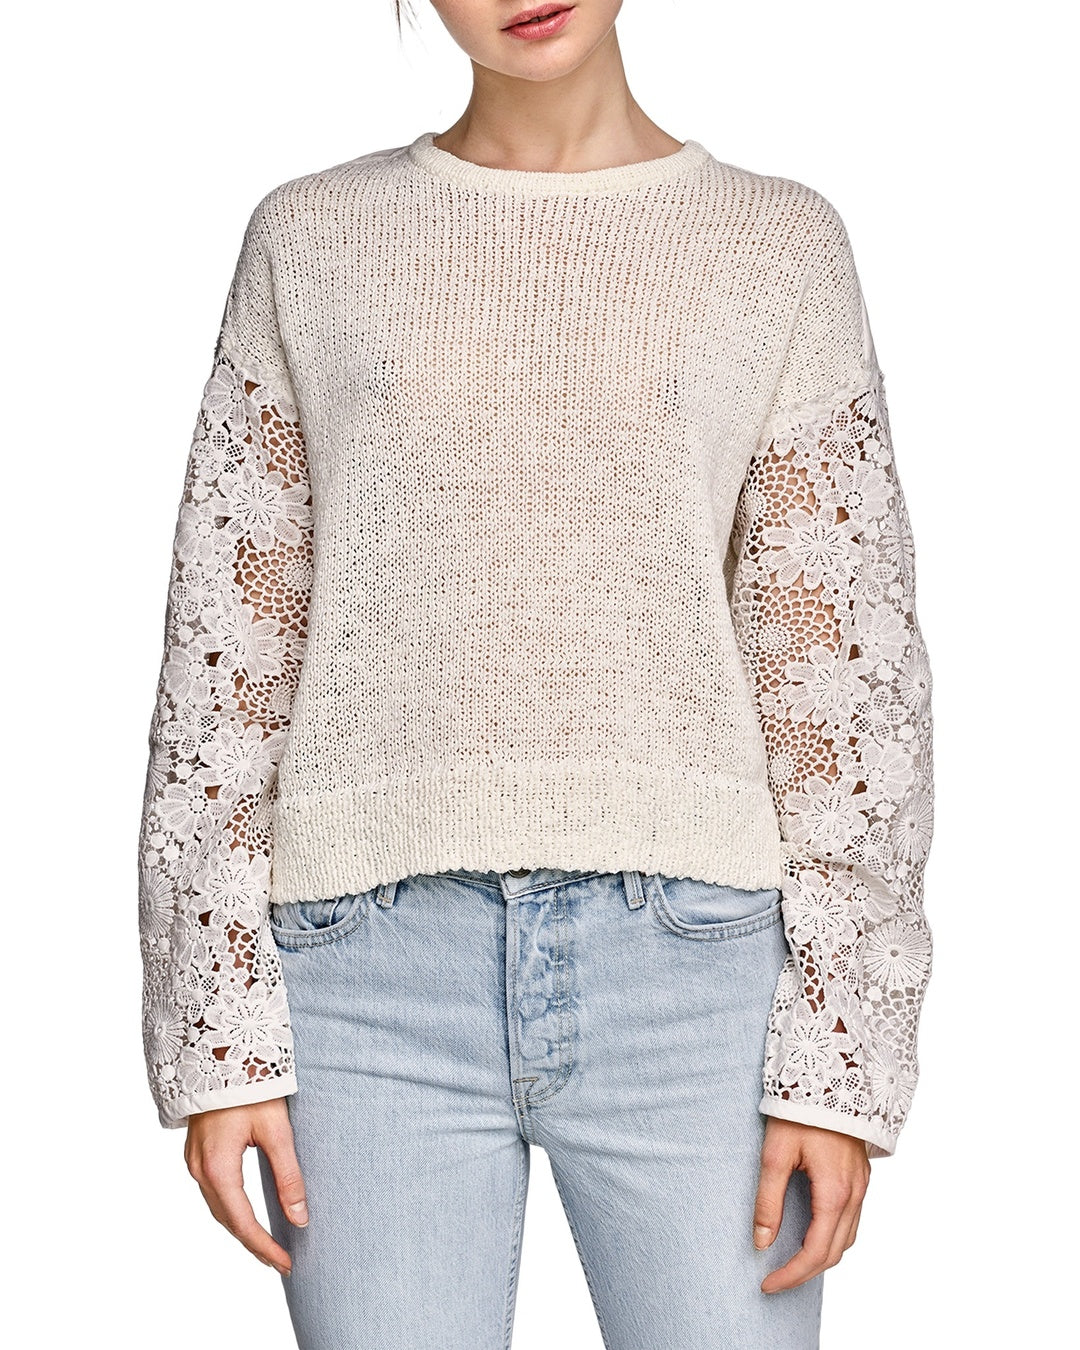 c0273ea340 White + Warren Floral Lace Sleeve Crewneck Sweater - The Shopping Bag